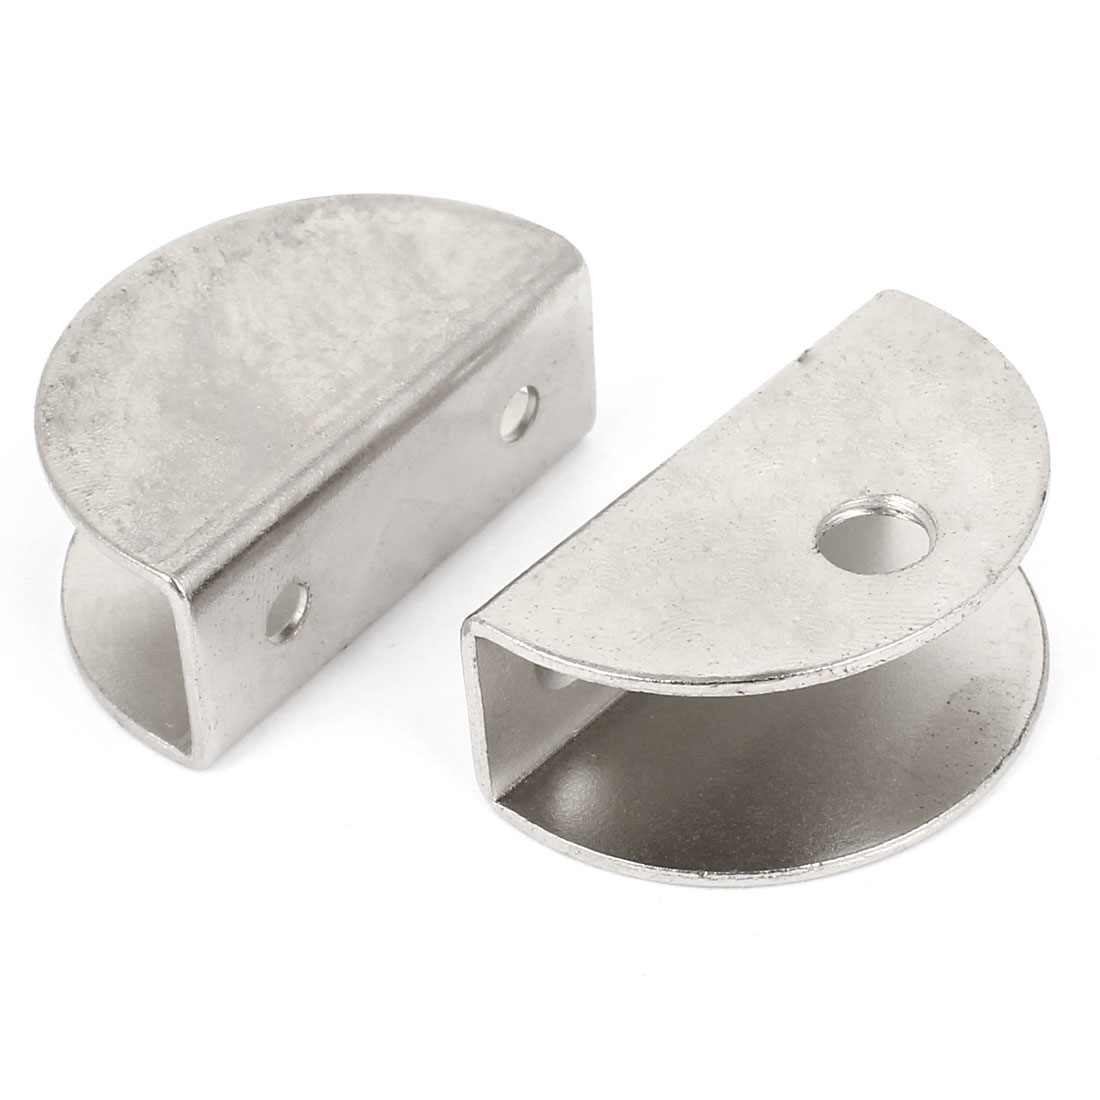 2 Pcs Stainless Steel Shelf Clip Support Brackets for 15mm Thickness Glass